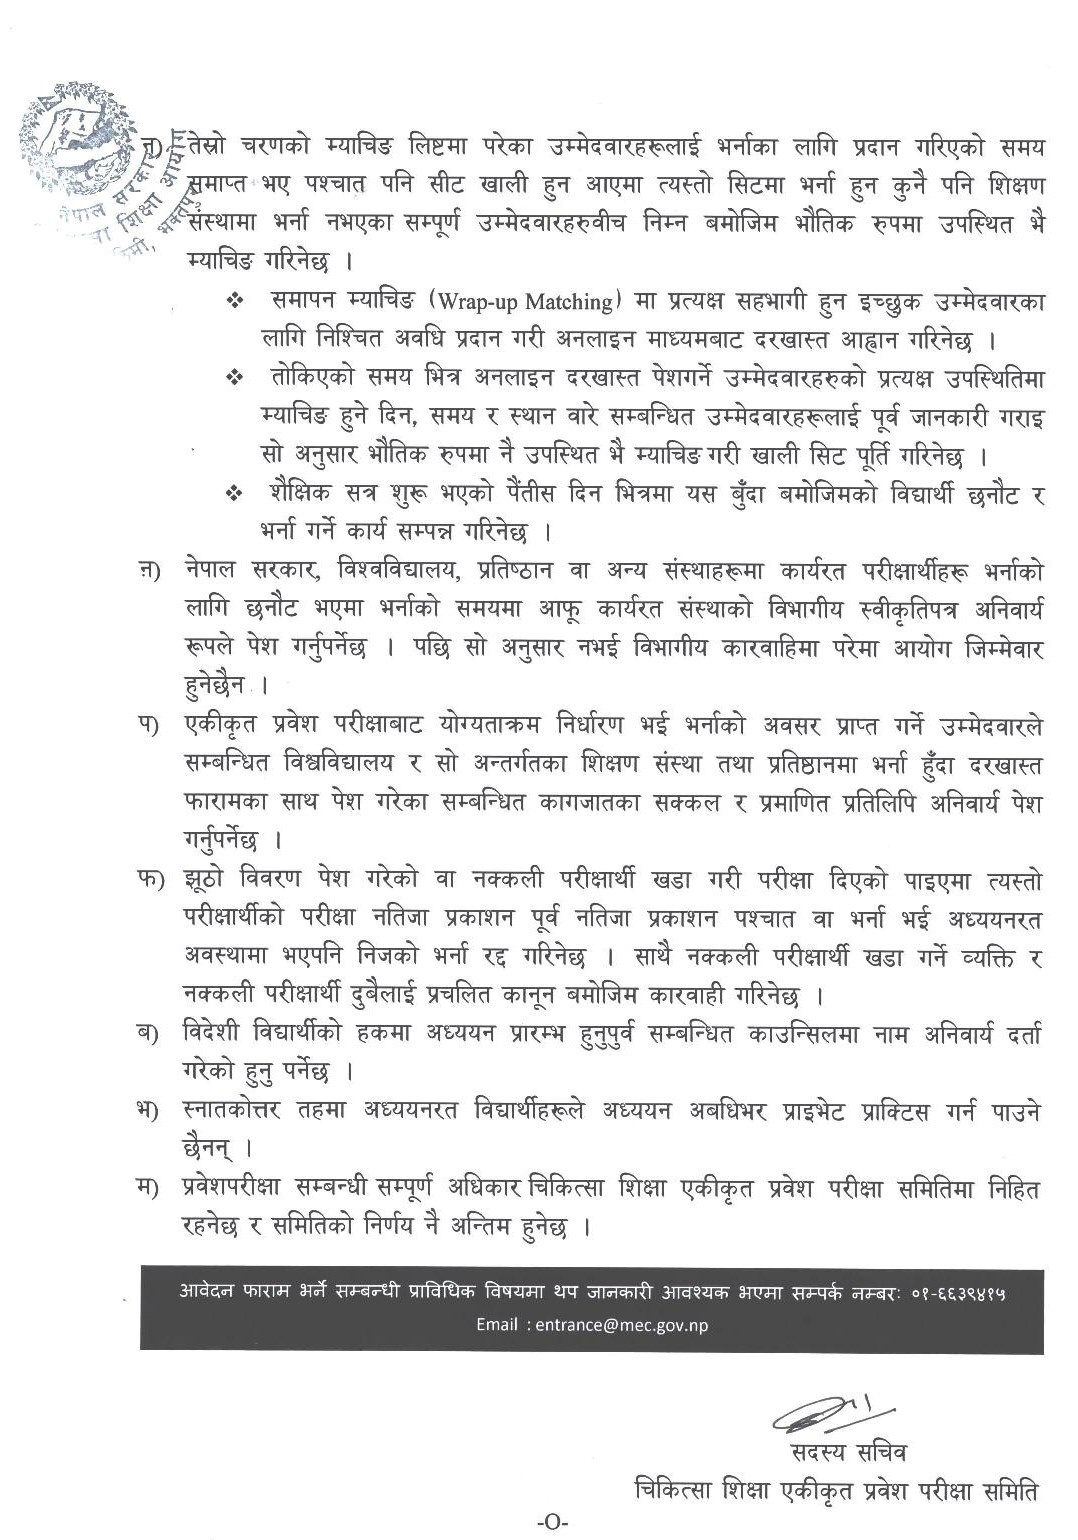 MEdical education commision Nepal